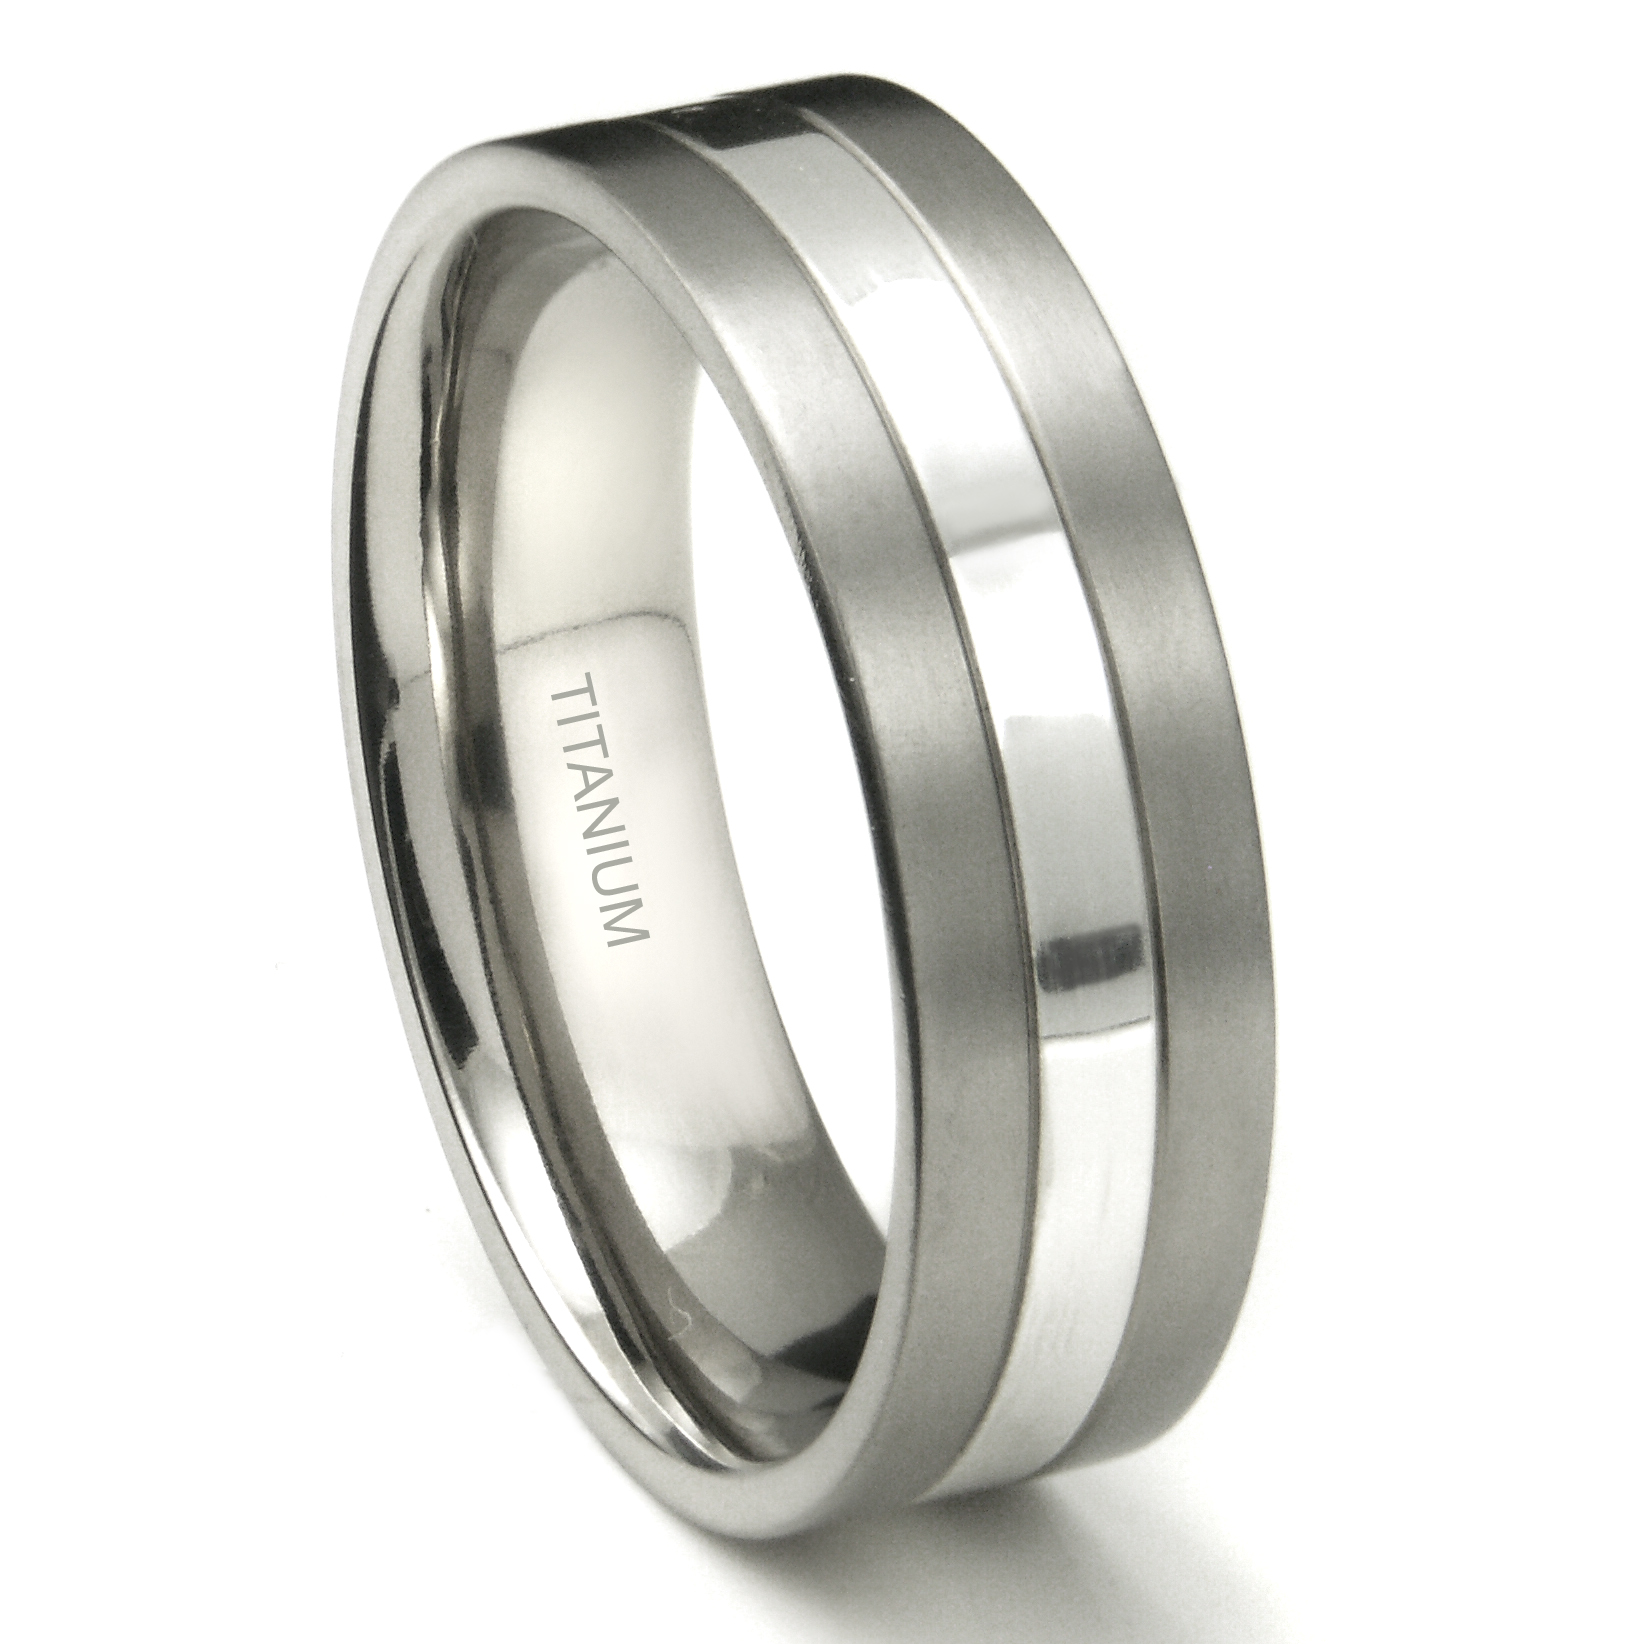 Titanium 7mm Two Tone Wedding Ring P mens titanium wedding band Home Men s Titanium Wedding Rings Loading zoom